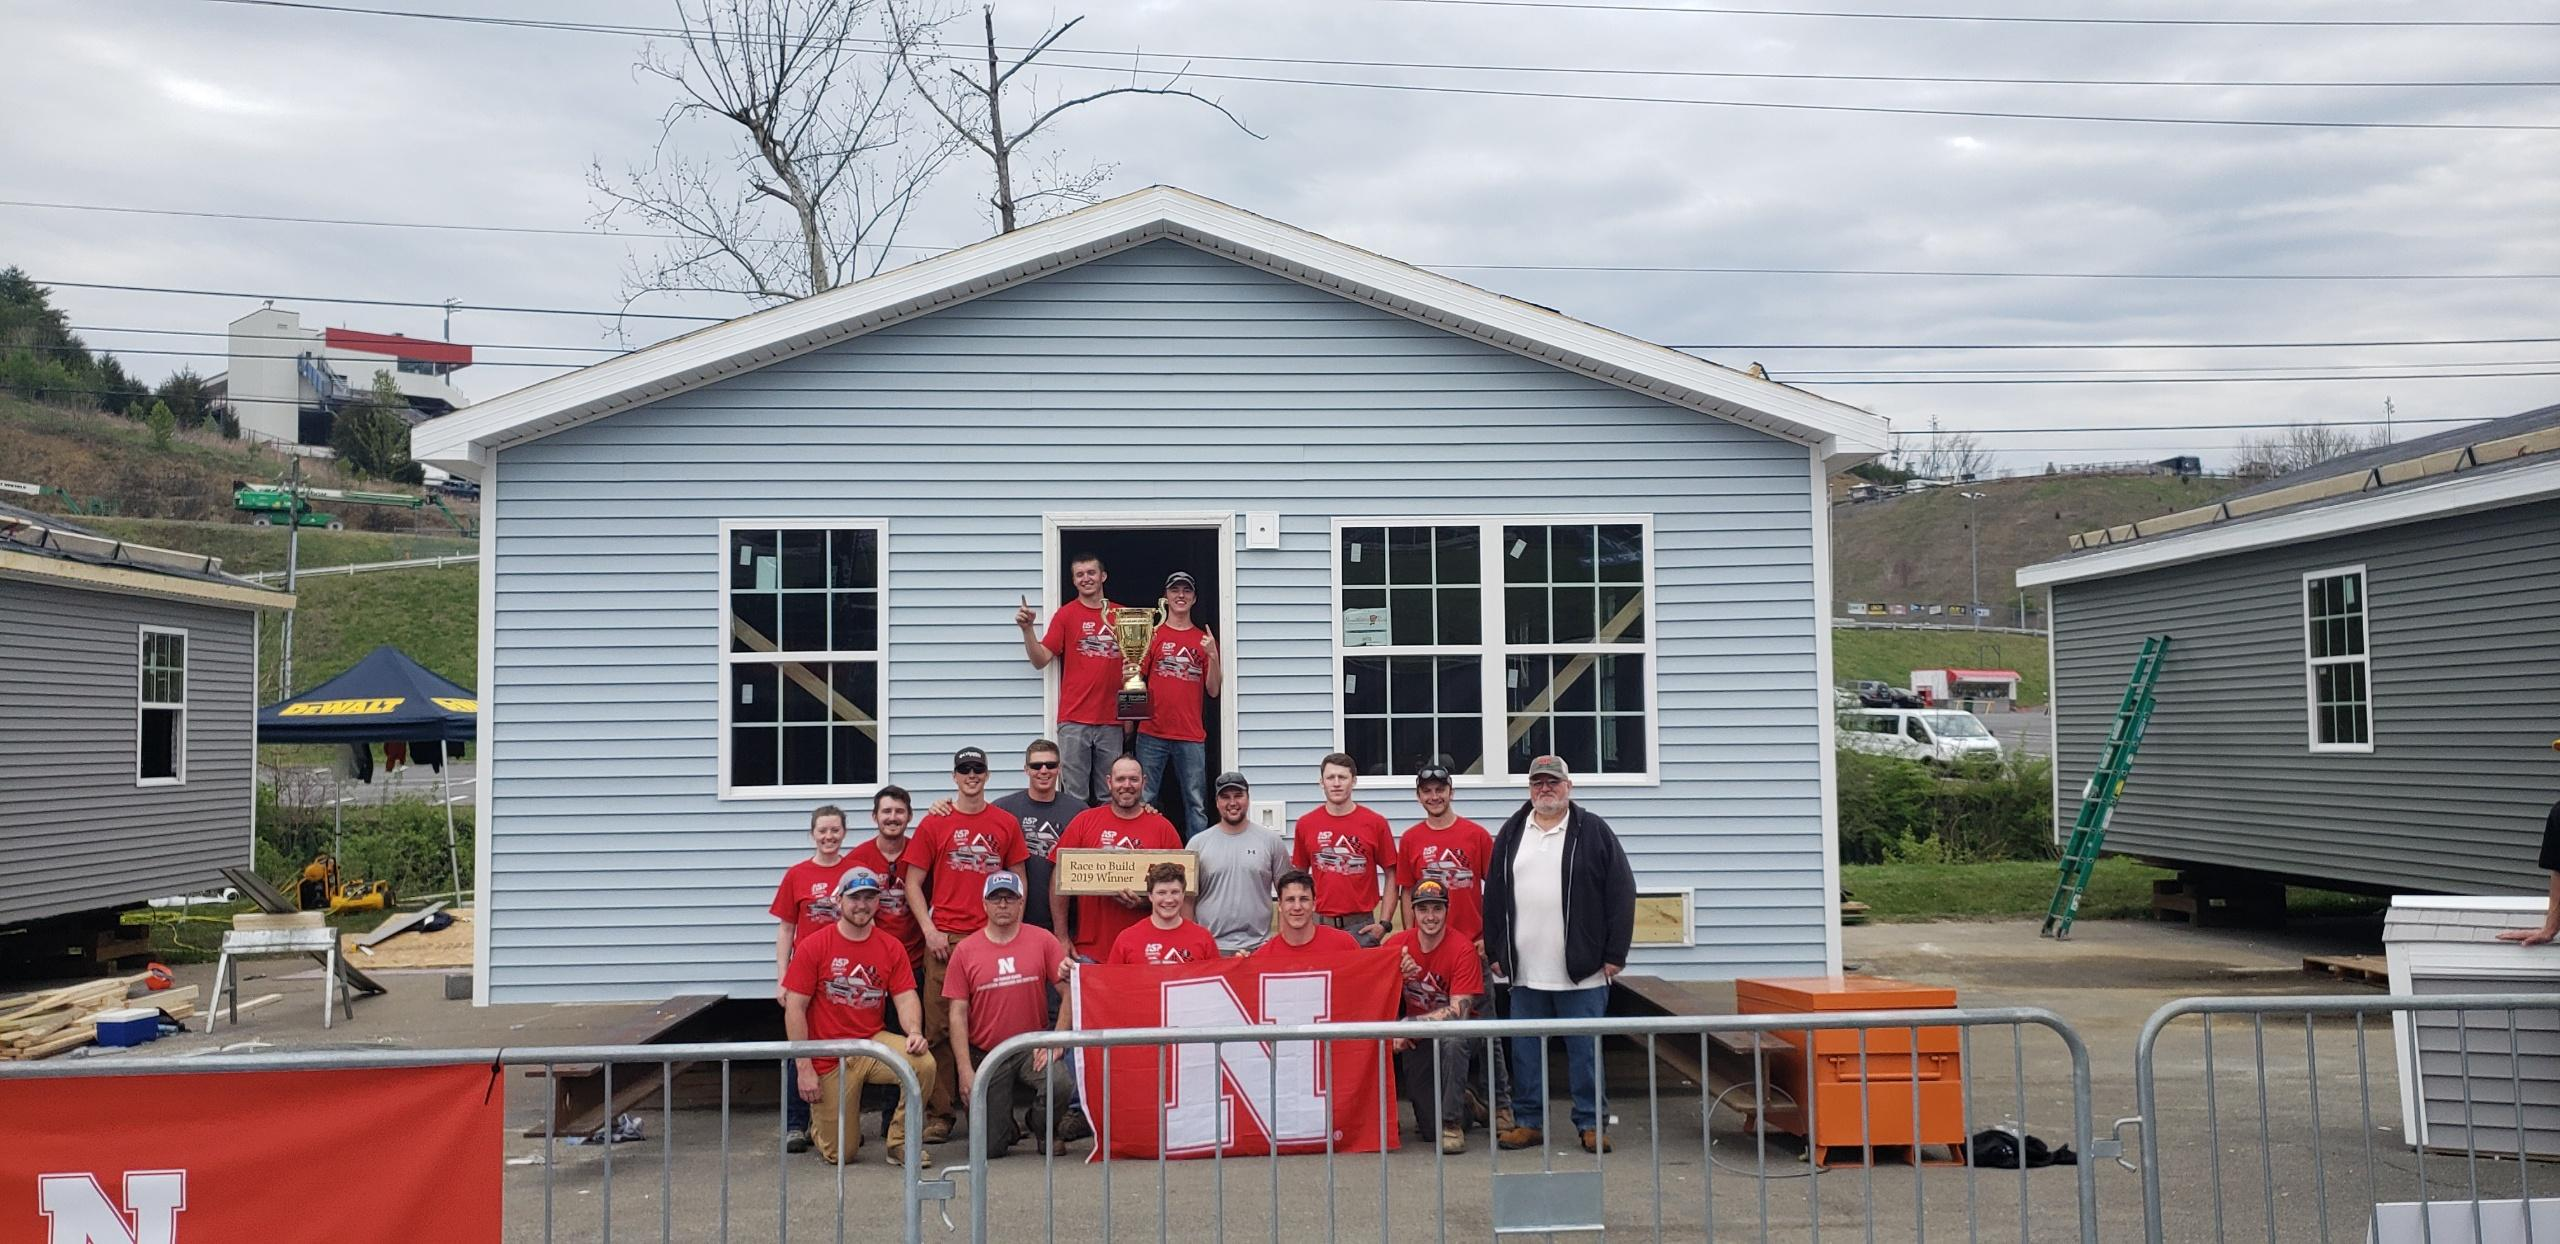 The Nebraska construction management team won the Race to Build competition, held April 5-7 in Bristol, Tennessee. Three teams of university students compete to build houses over three days. The houses are given to veteran families in that area.